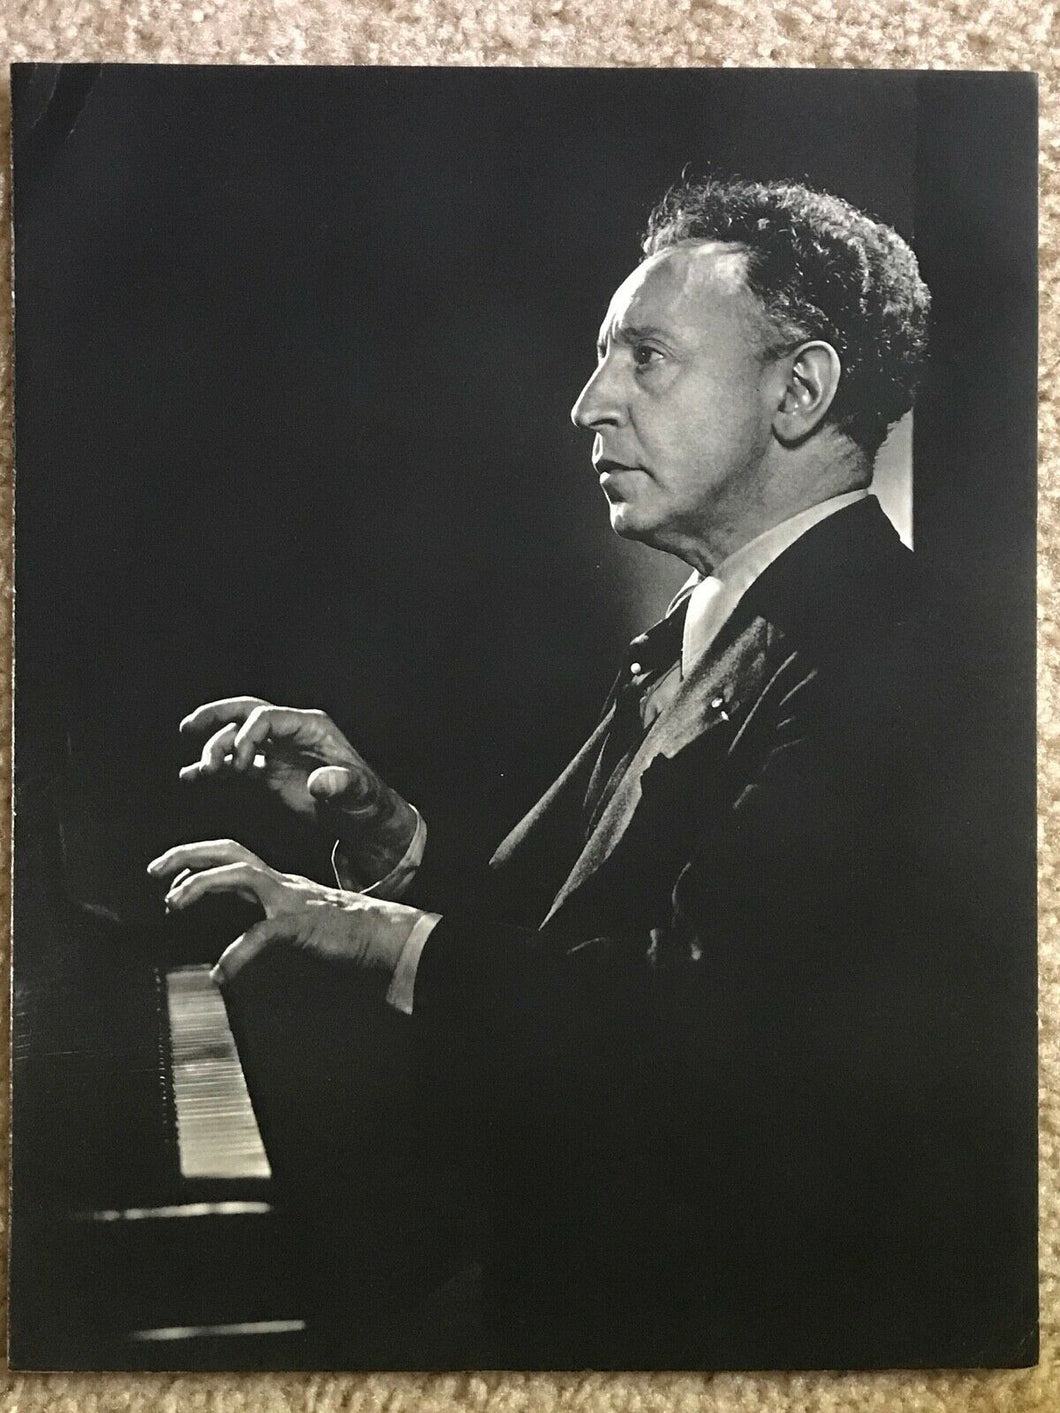 Vintage YOUSUF KARSH Photogravure Portrait Art Photo, 1960s - ARTHUR RUBINSTEIN